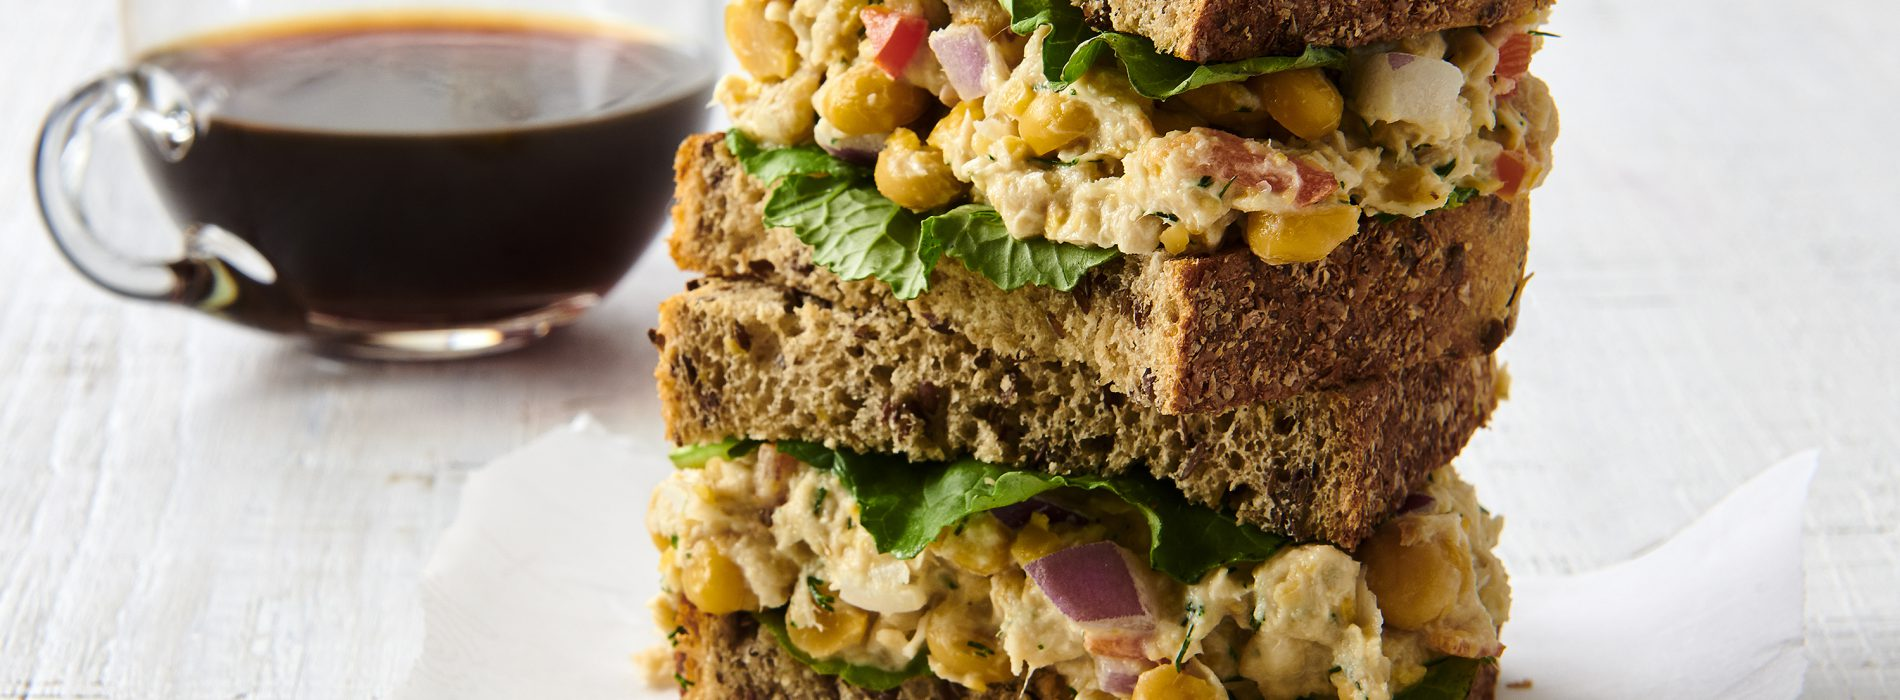 Tuna Chickpea Salad Sandwich